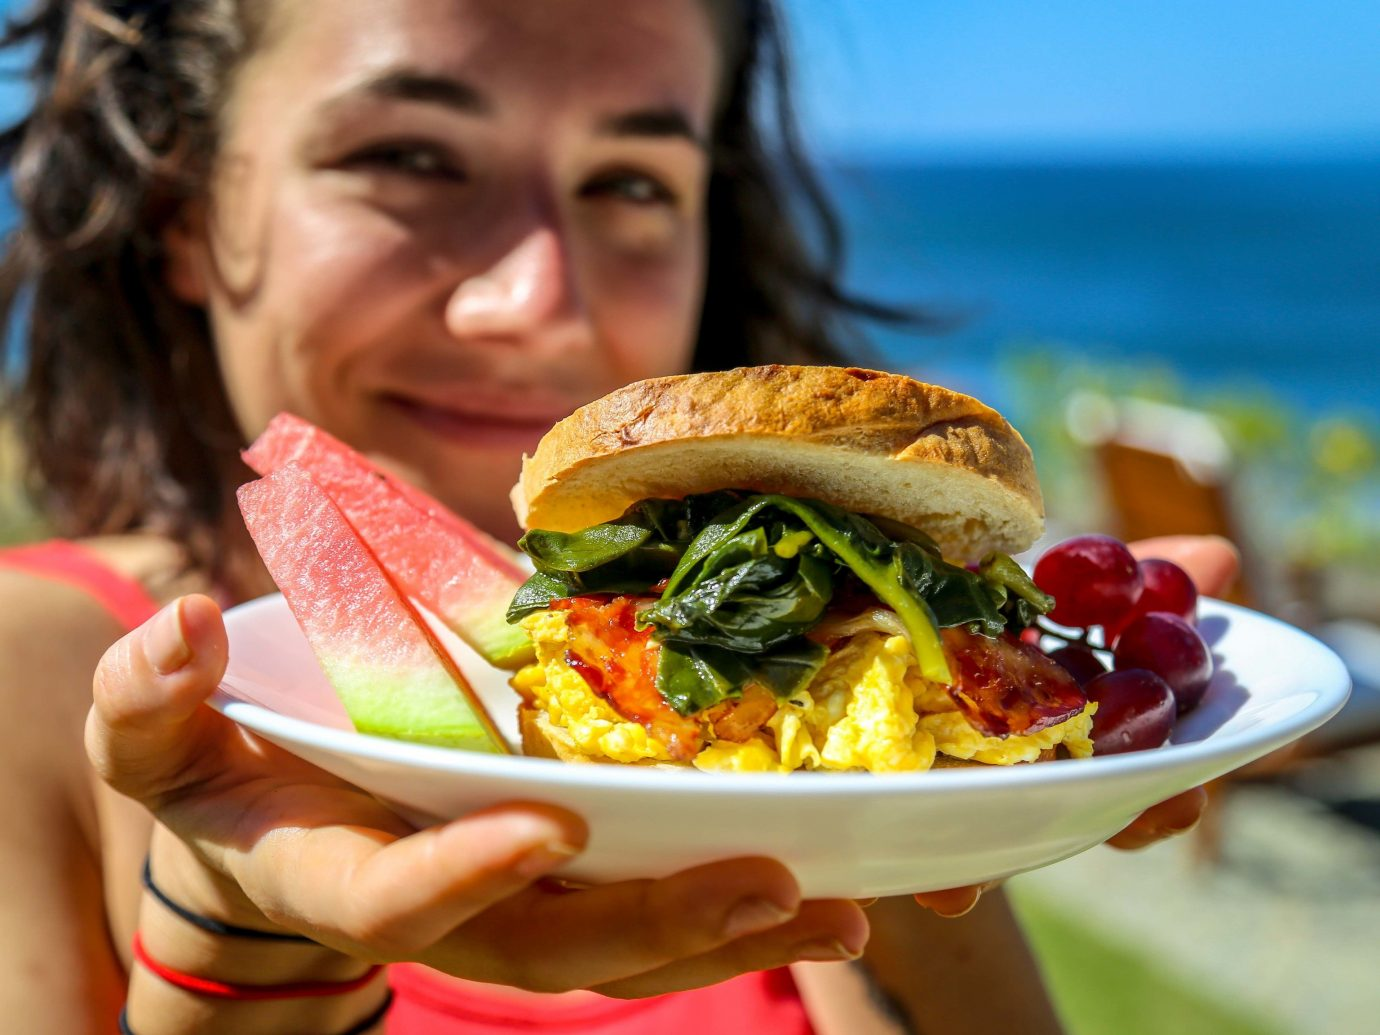 Health + Wellness Meditation Retreats Trip Ideas Yoga Retreats person outdoor food human action dish snack food eating sandwich meal lunch cuisine breakfast produce fast food sense junk food